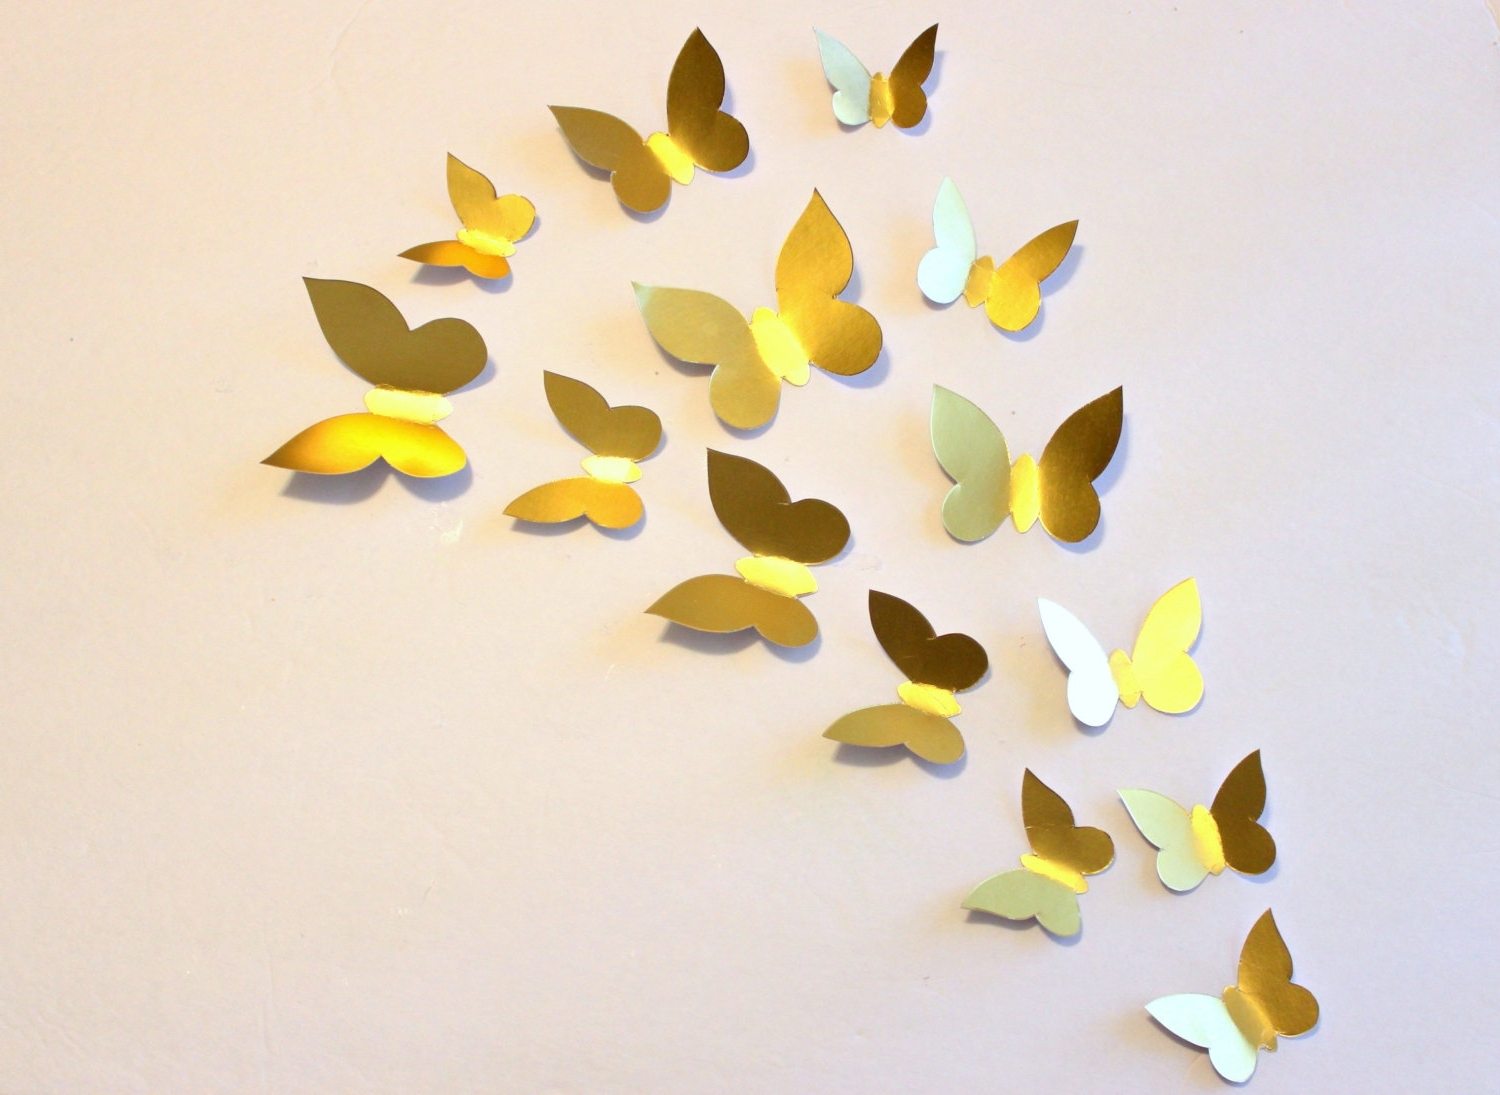 Magnificent Butterfly Metal Wall Decor Pictures Inspiration - The ...